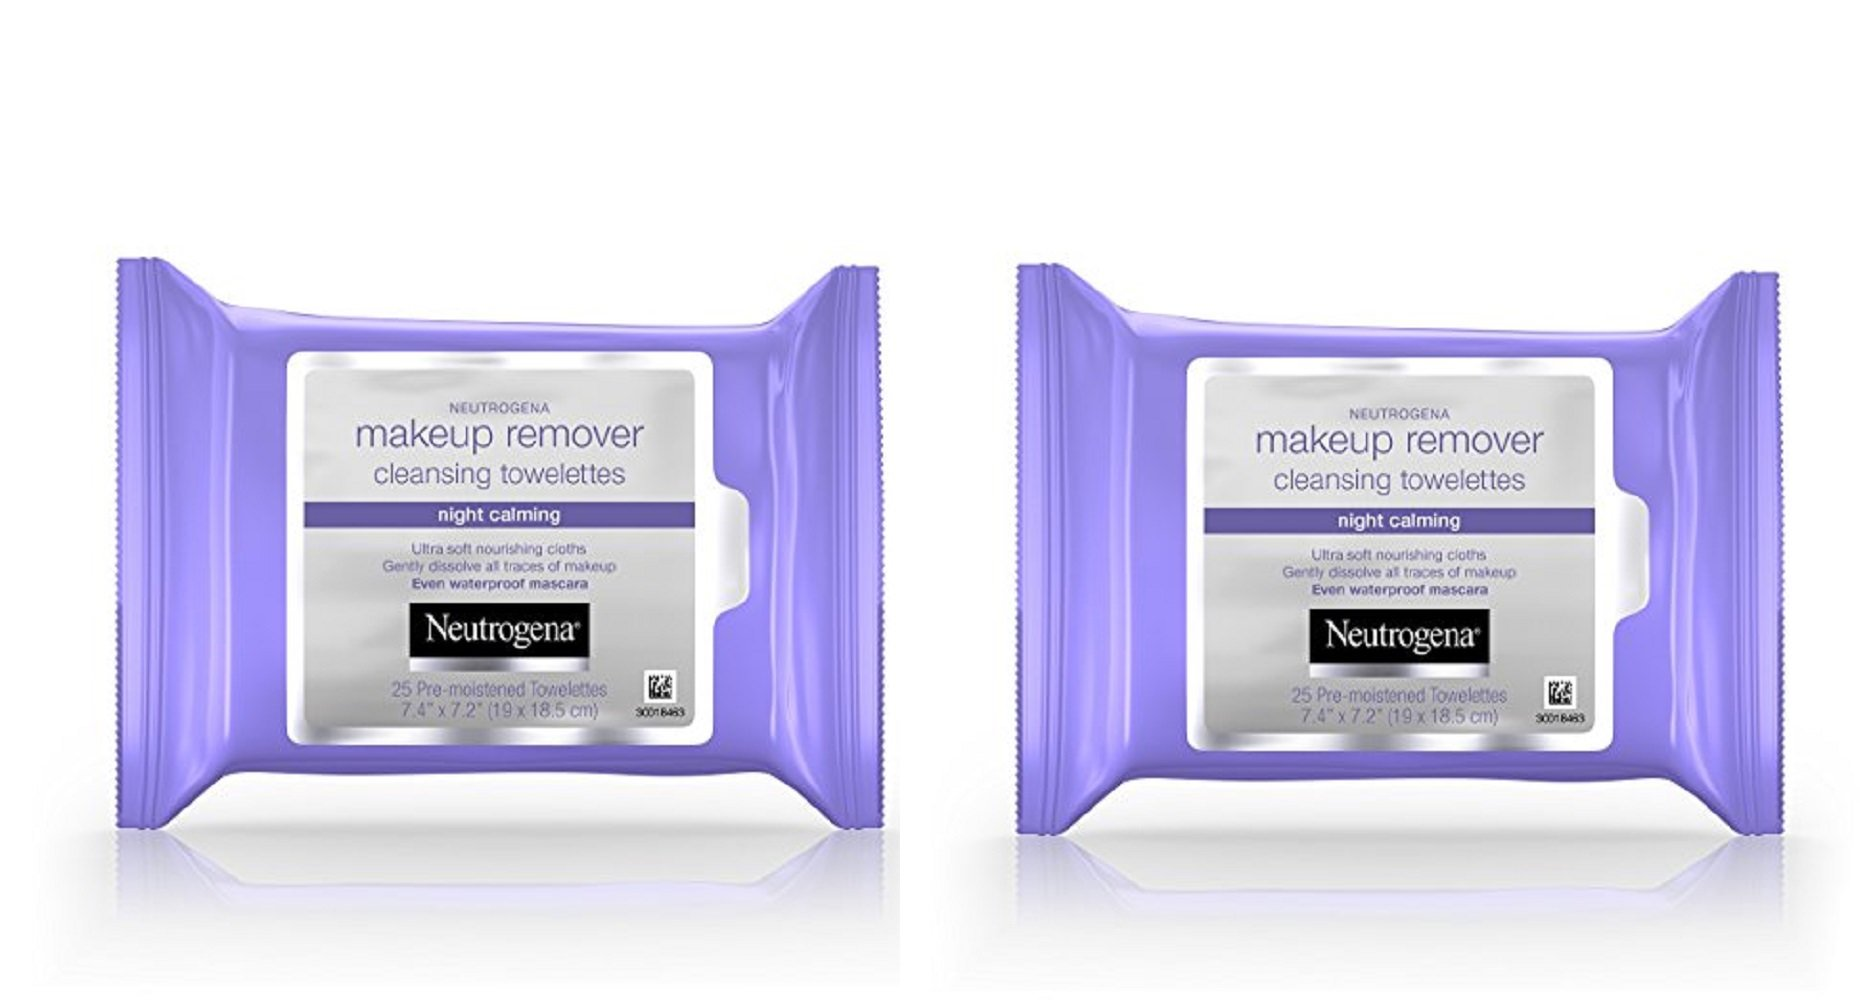 Neutrogena Makeup Remover Cleansing Towelettes Night Calming, 25 Count (Pack of 6) kQaTwh, 2Pack (Night)